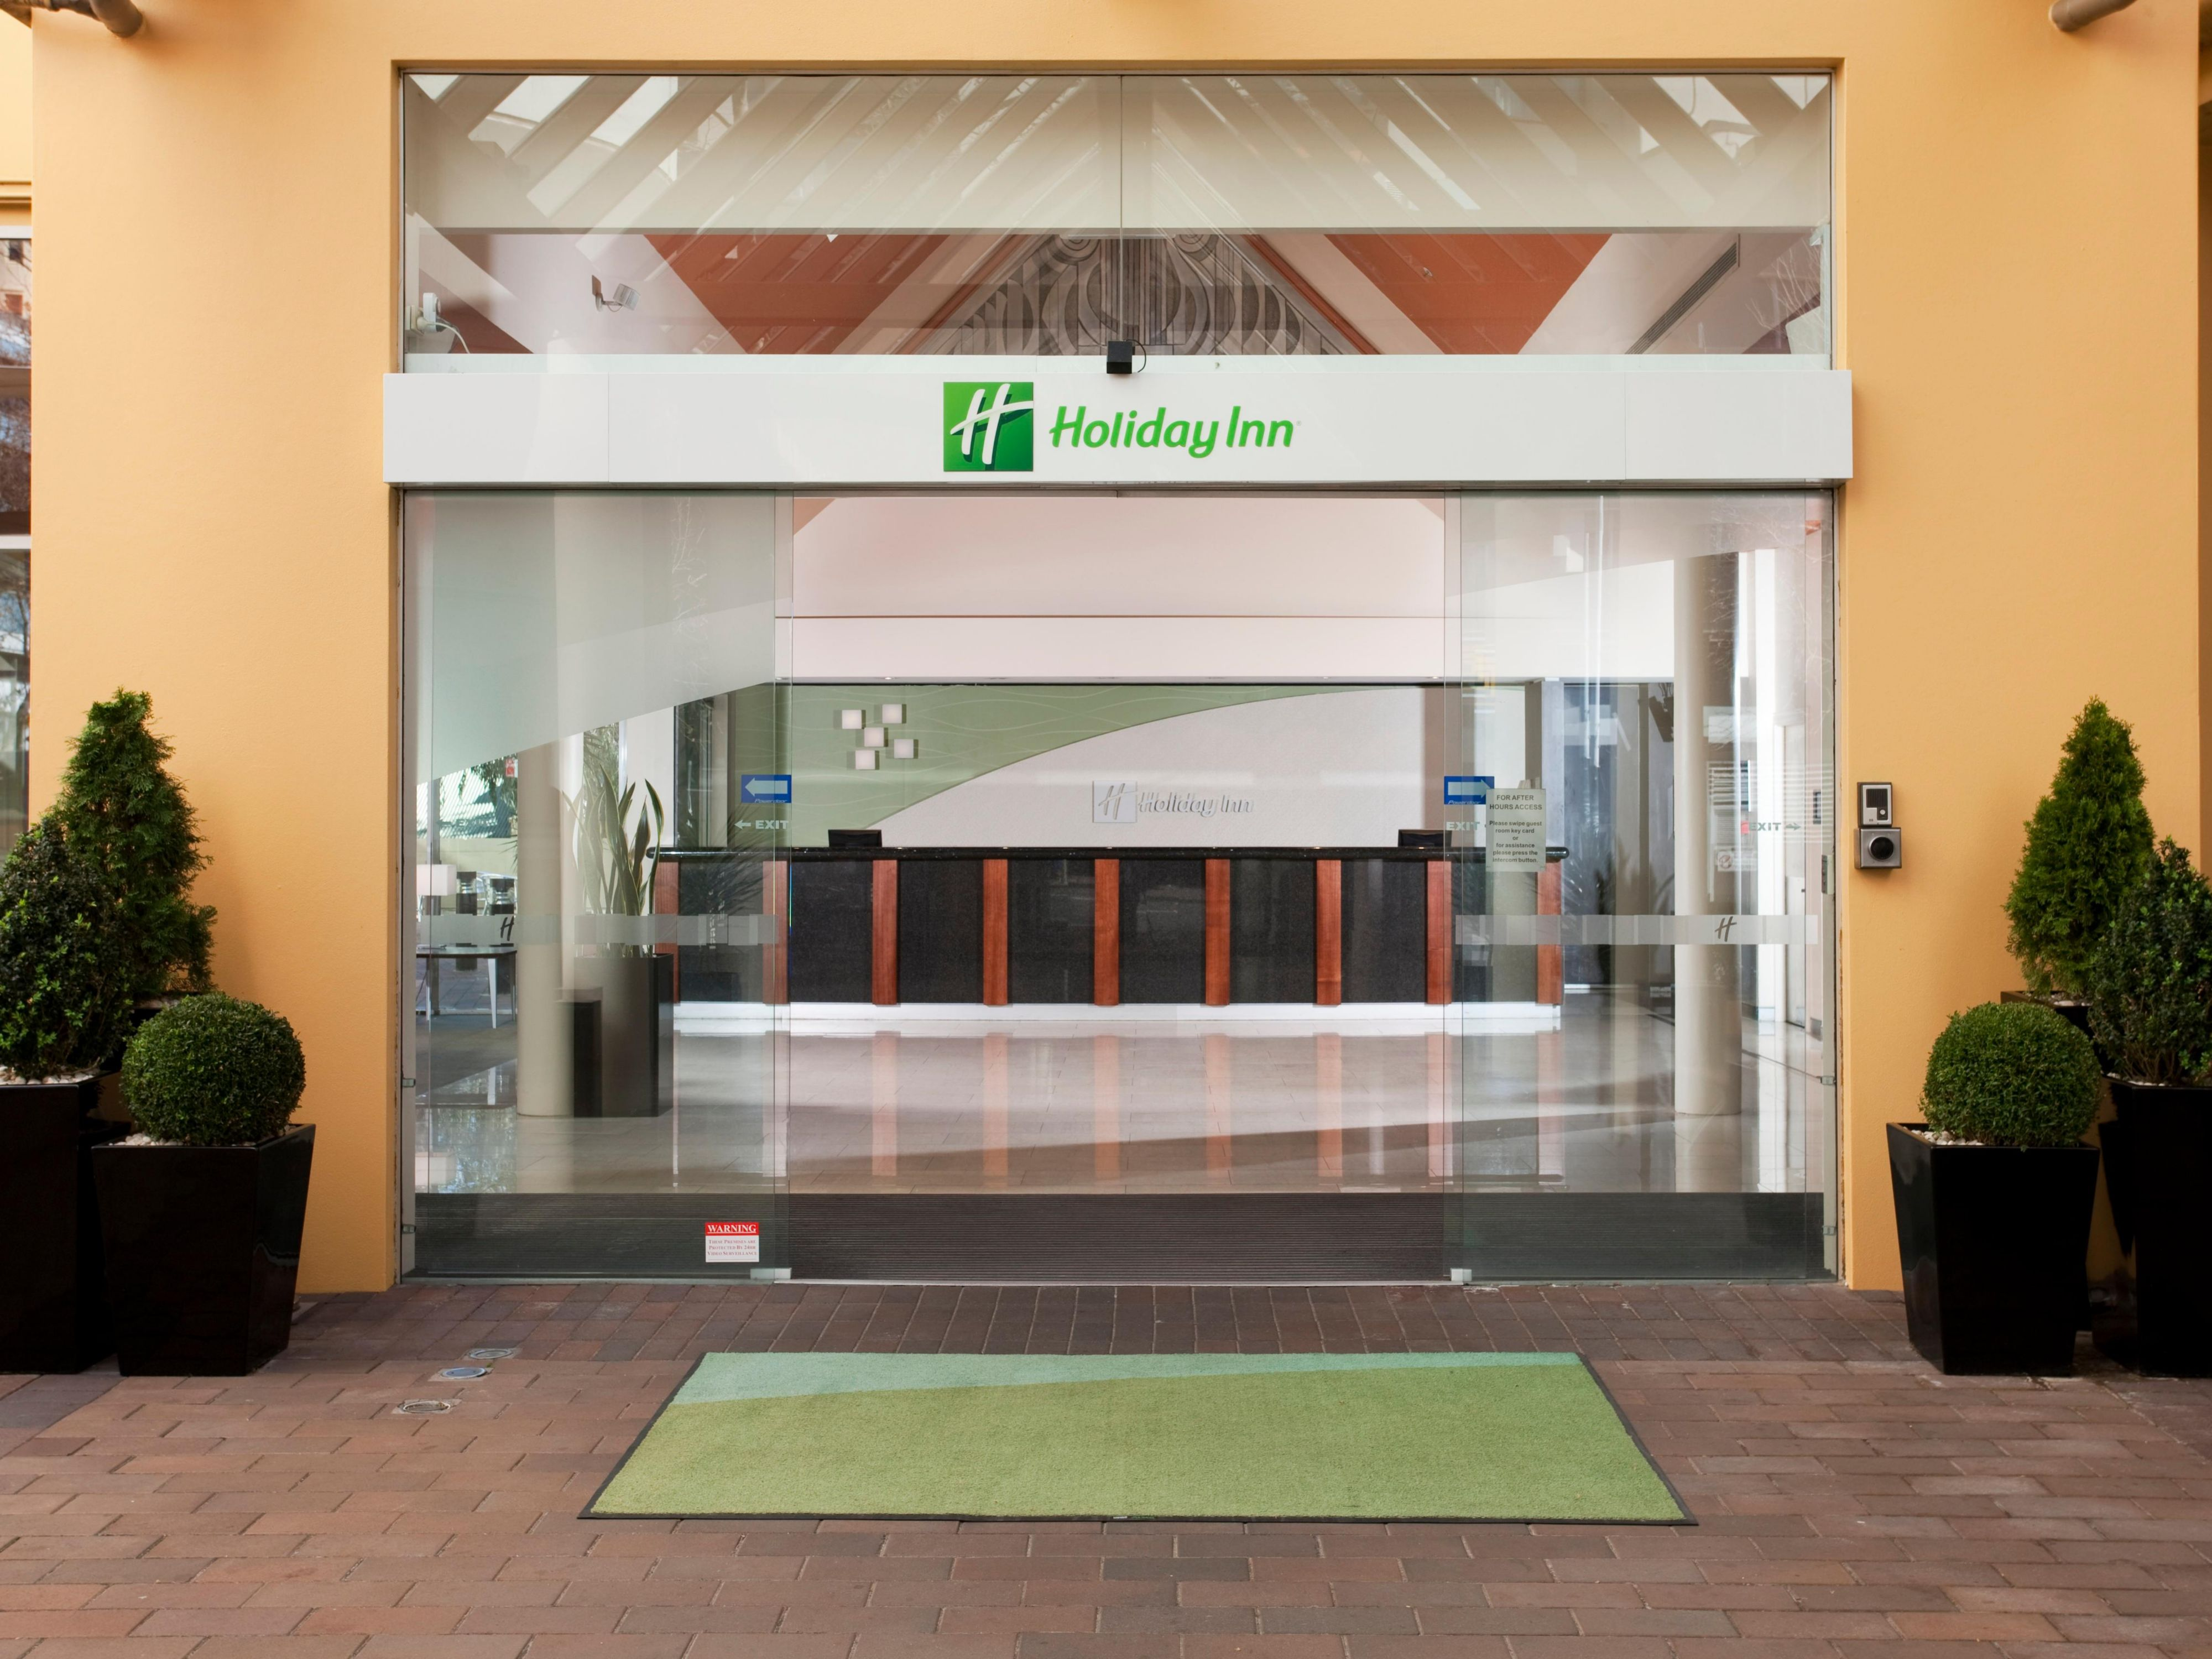 Stay at Holiday Inn Potts Point and enjoy our exceptional service.